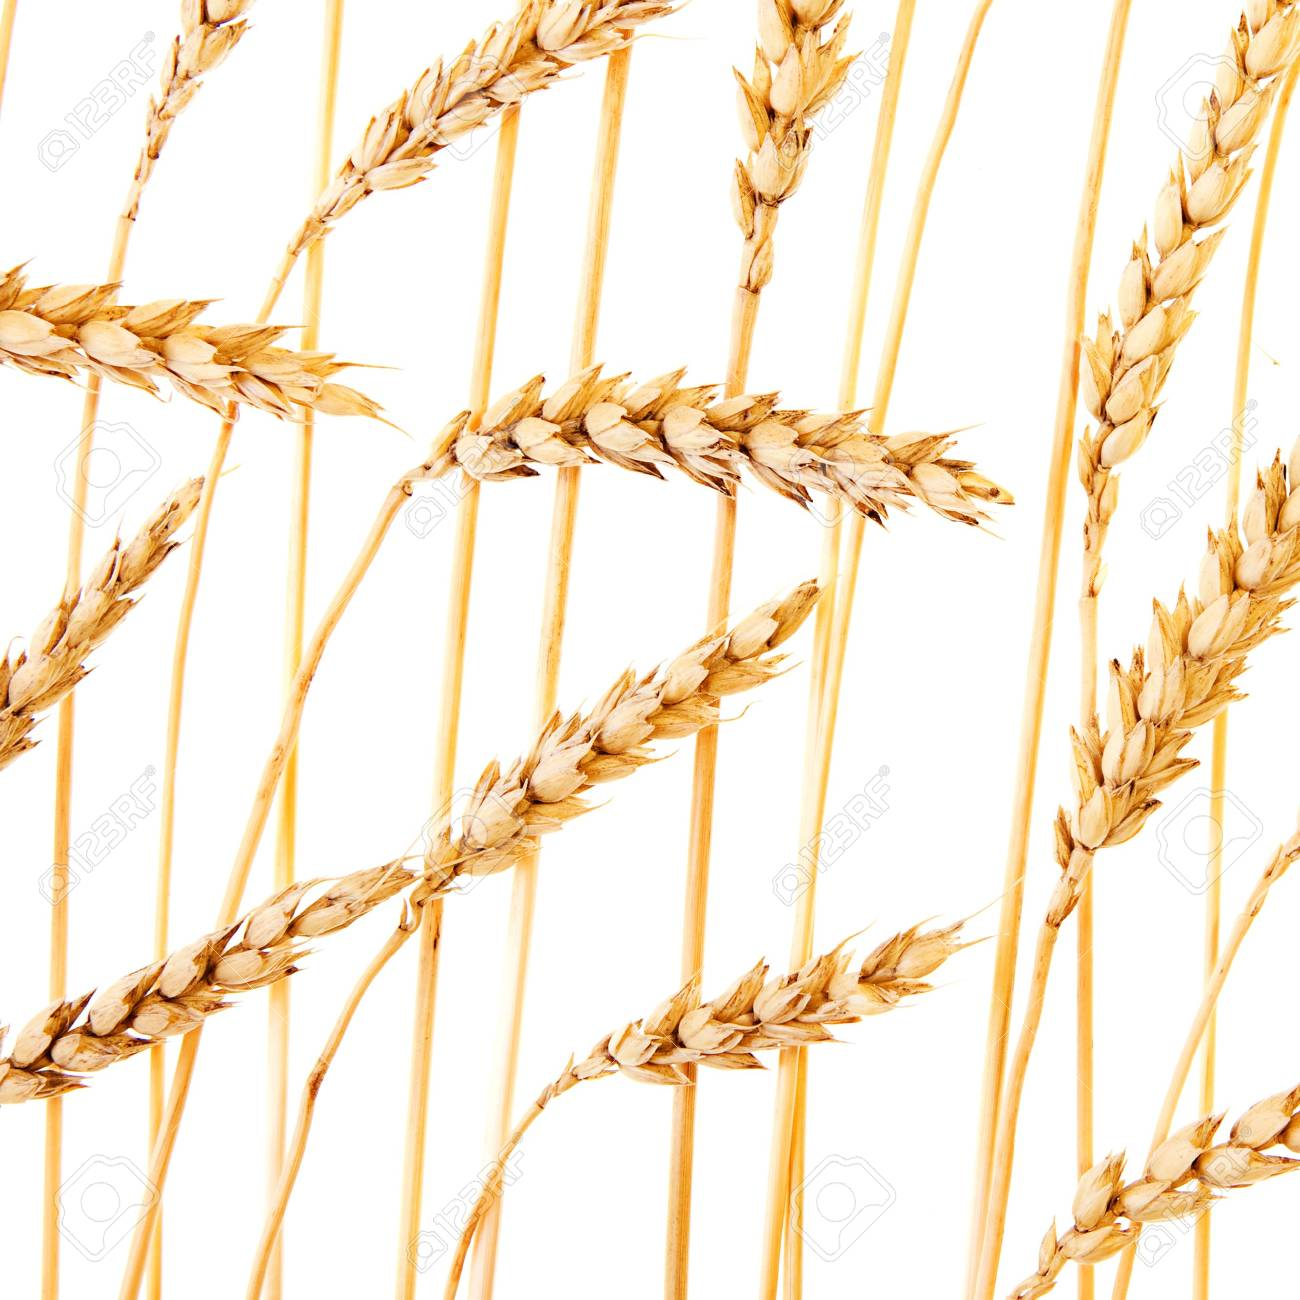 Golden wheat isolated on a white background. Stock Photo - 5375198